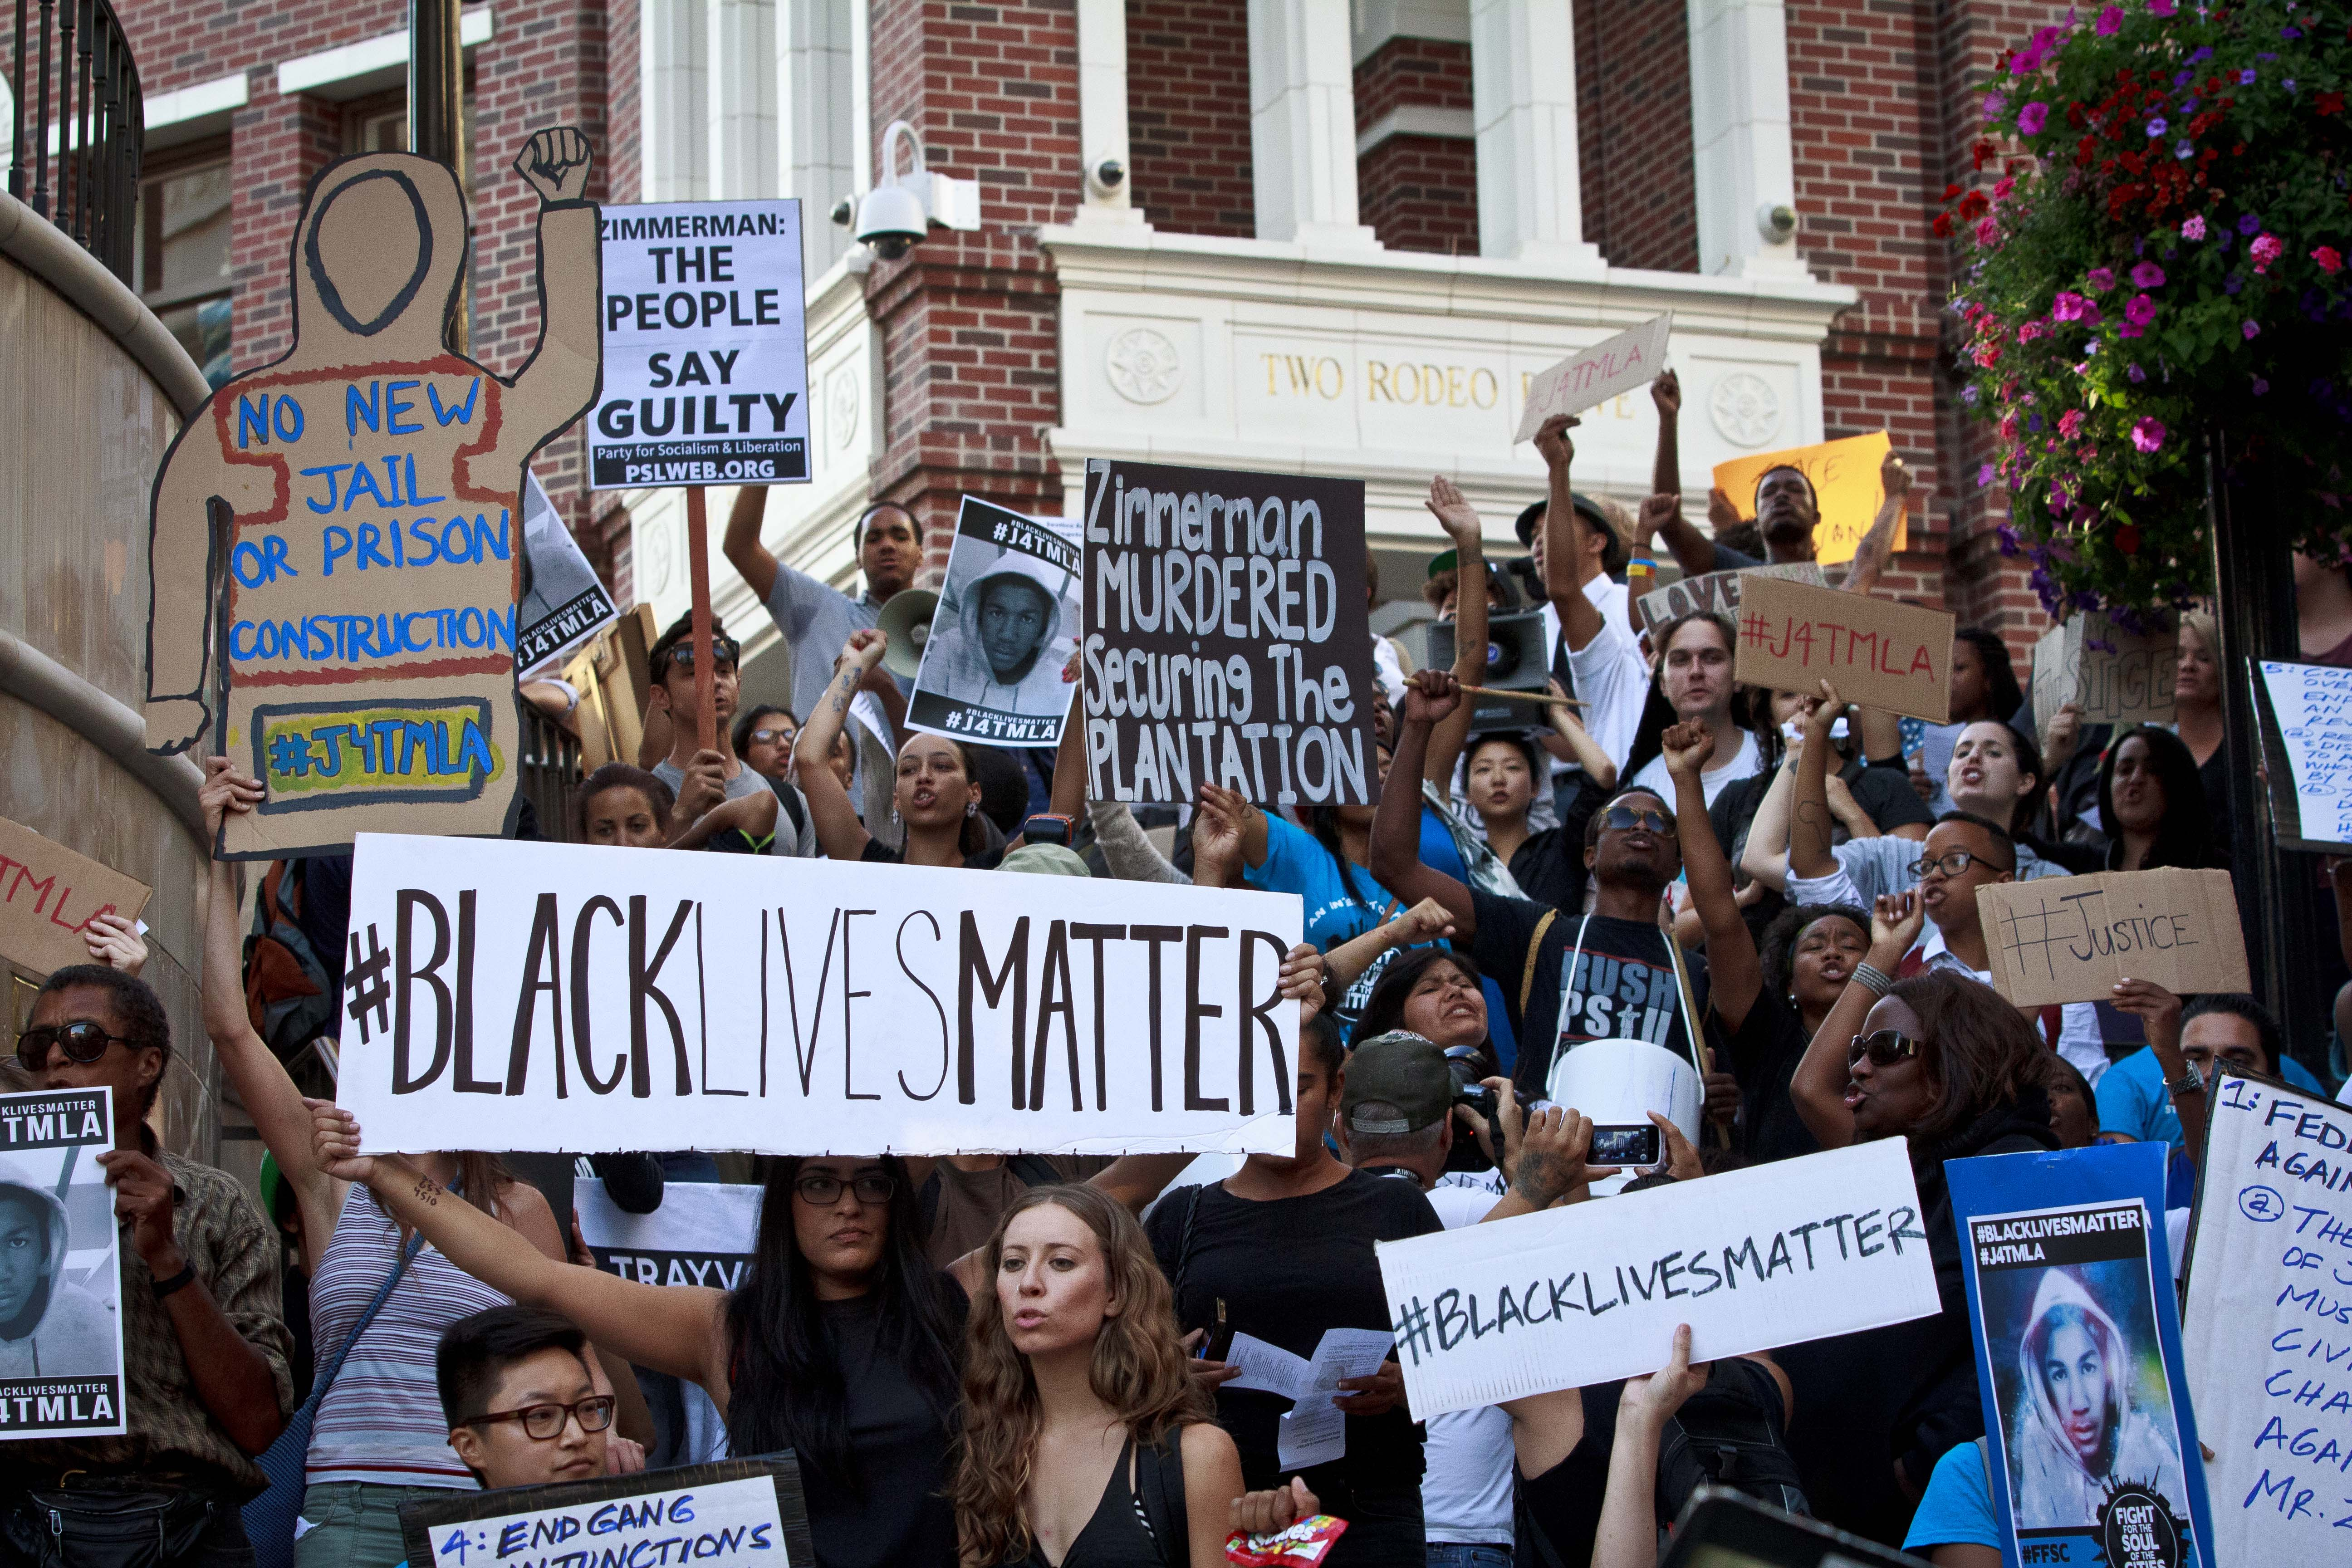 Protesters take to the streets to bring attention to the push for justice in the Trayvon Martin case as they take over Rodeo Drive on July 17, 2013 in Beverly Hills, California. (Photo by Jose Lopez)